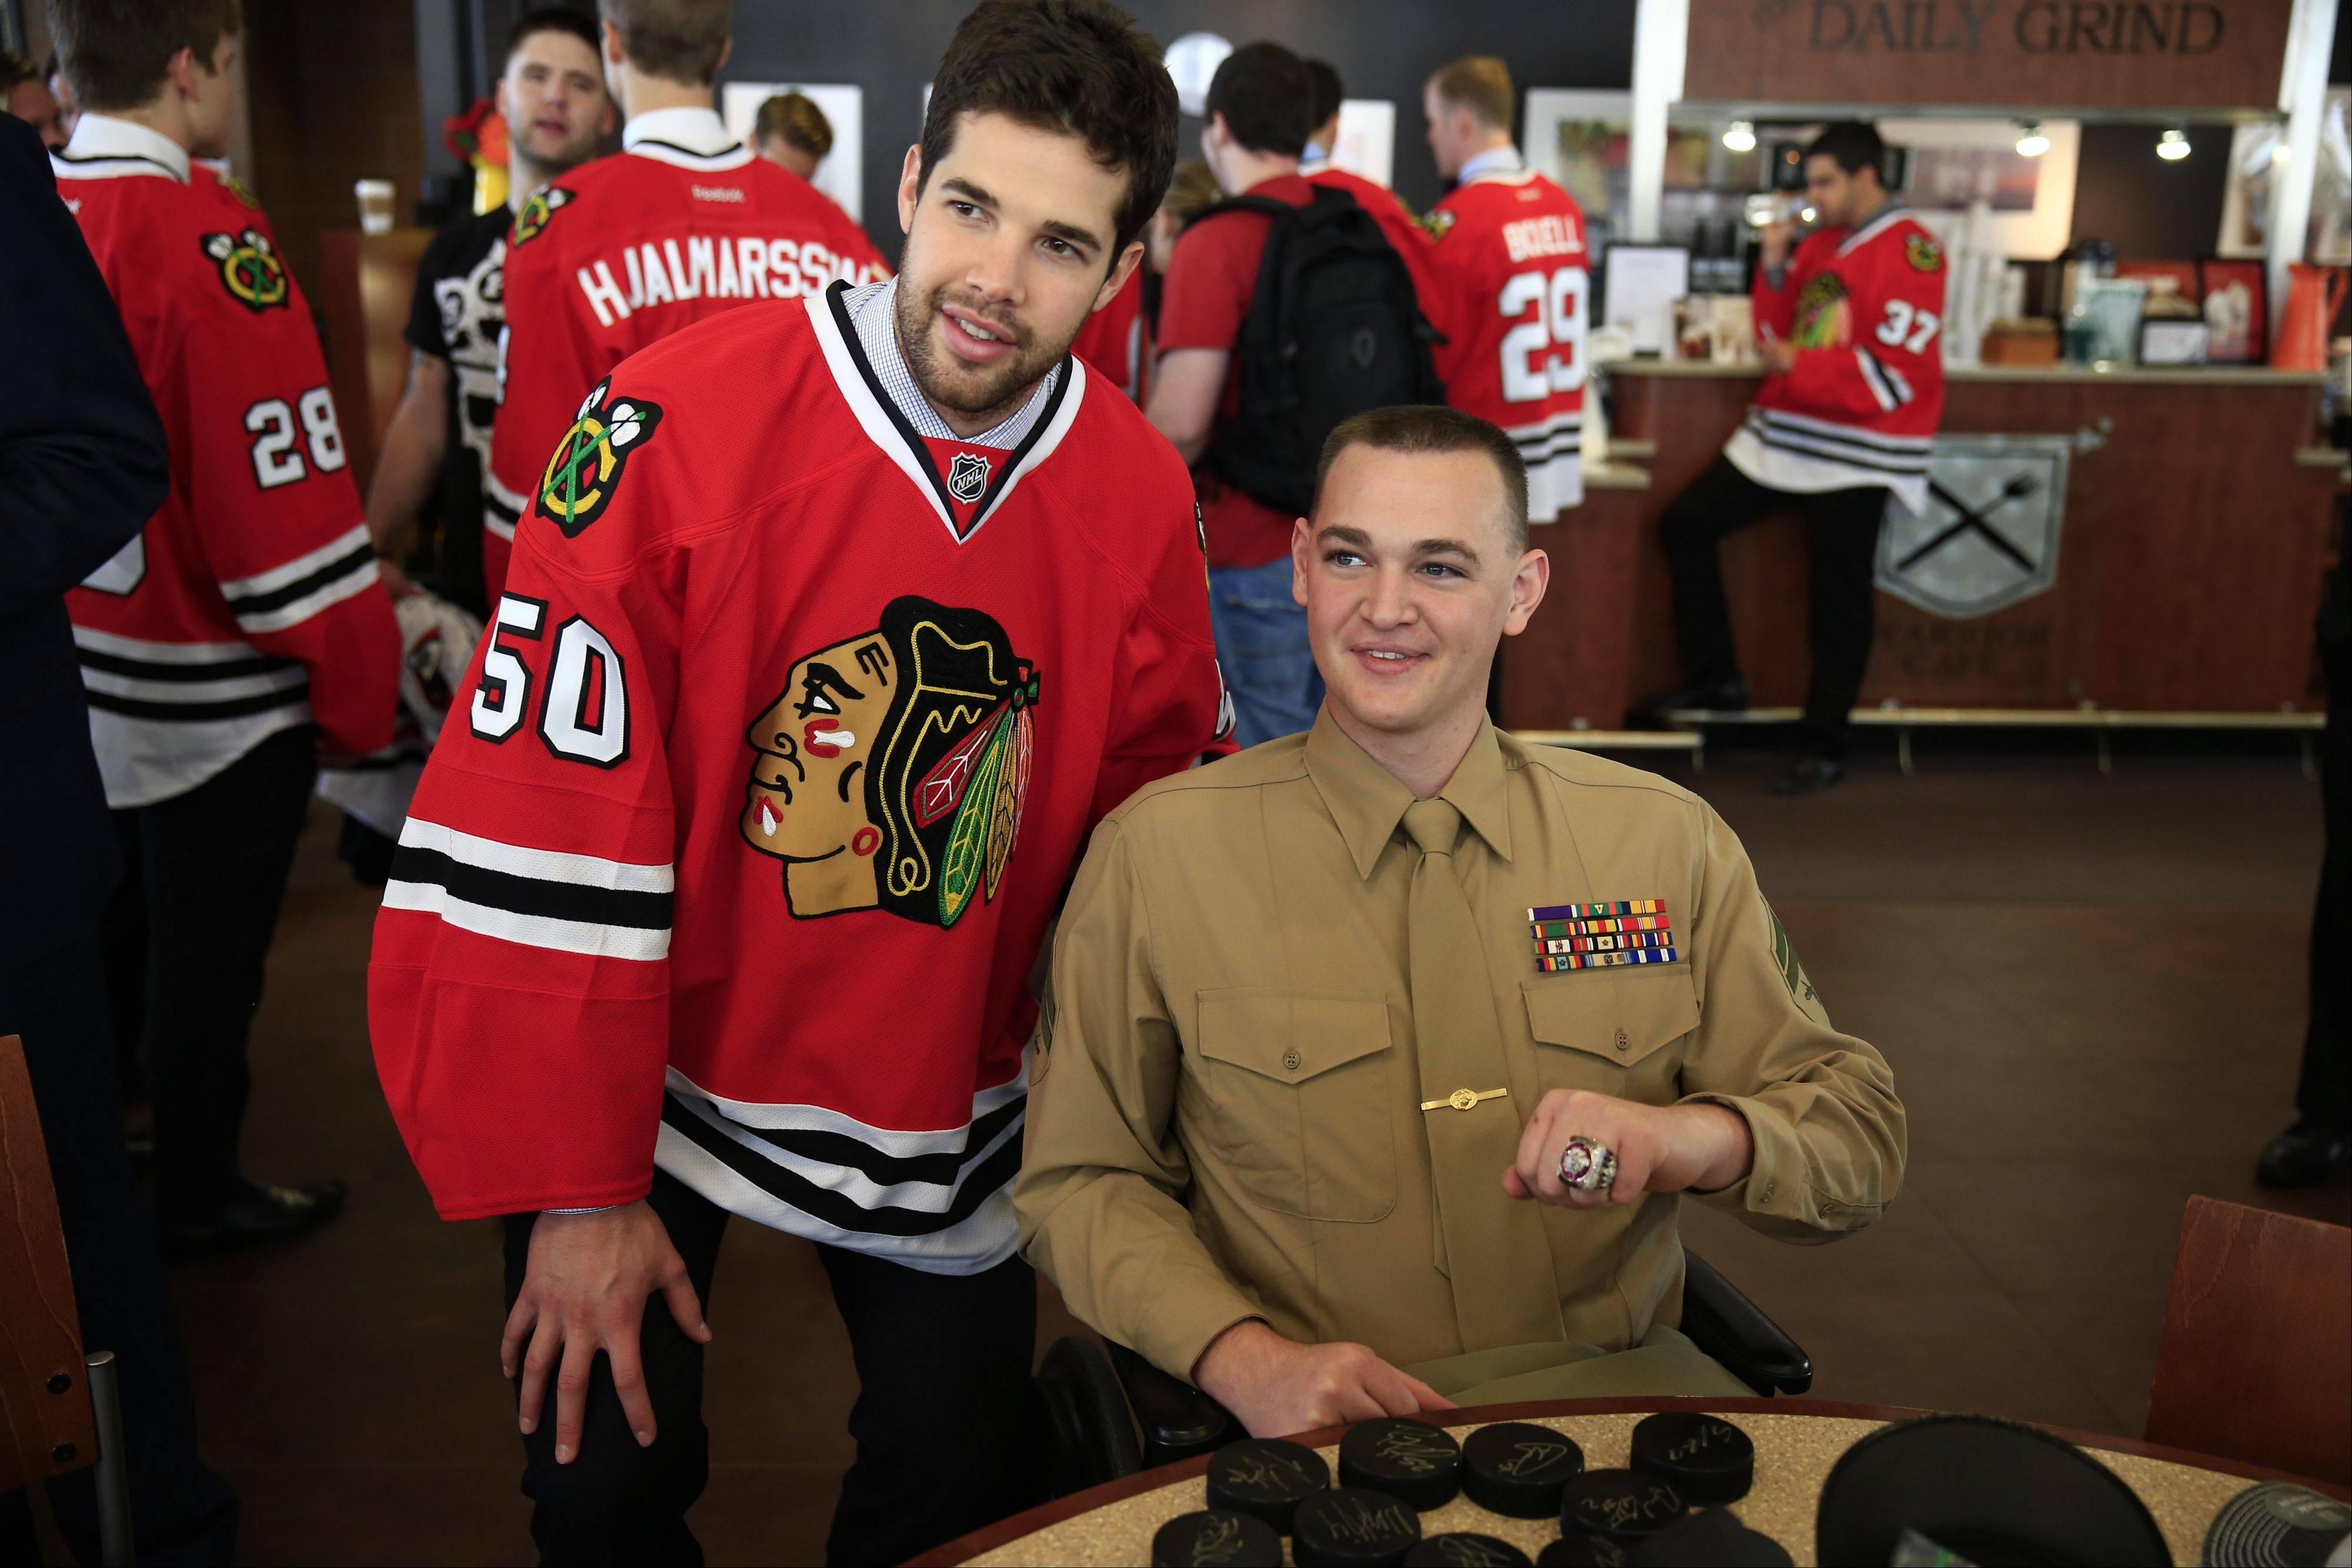 Blackhawks meet president, then the heroes at Walter Reed